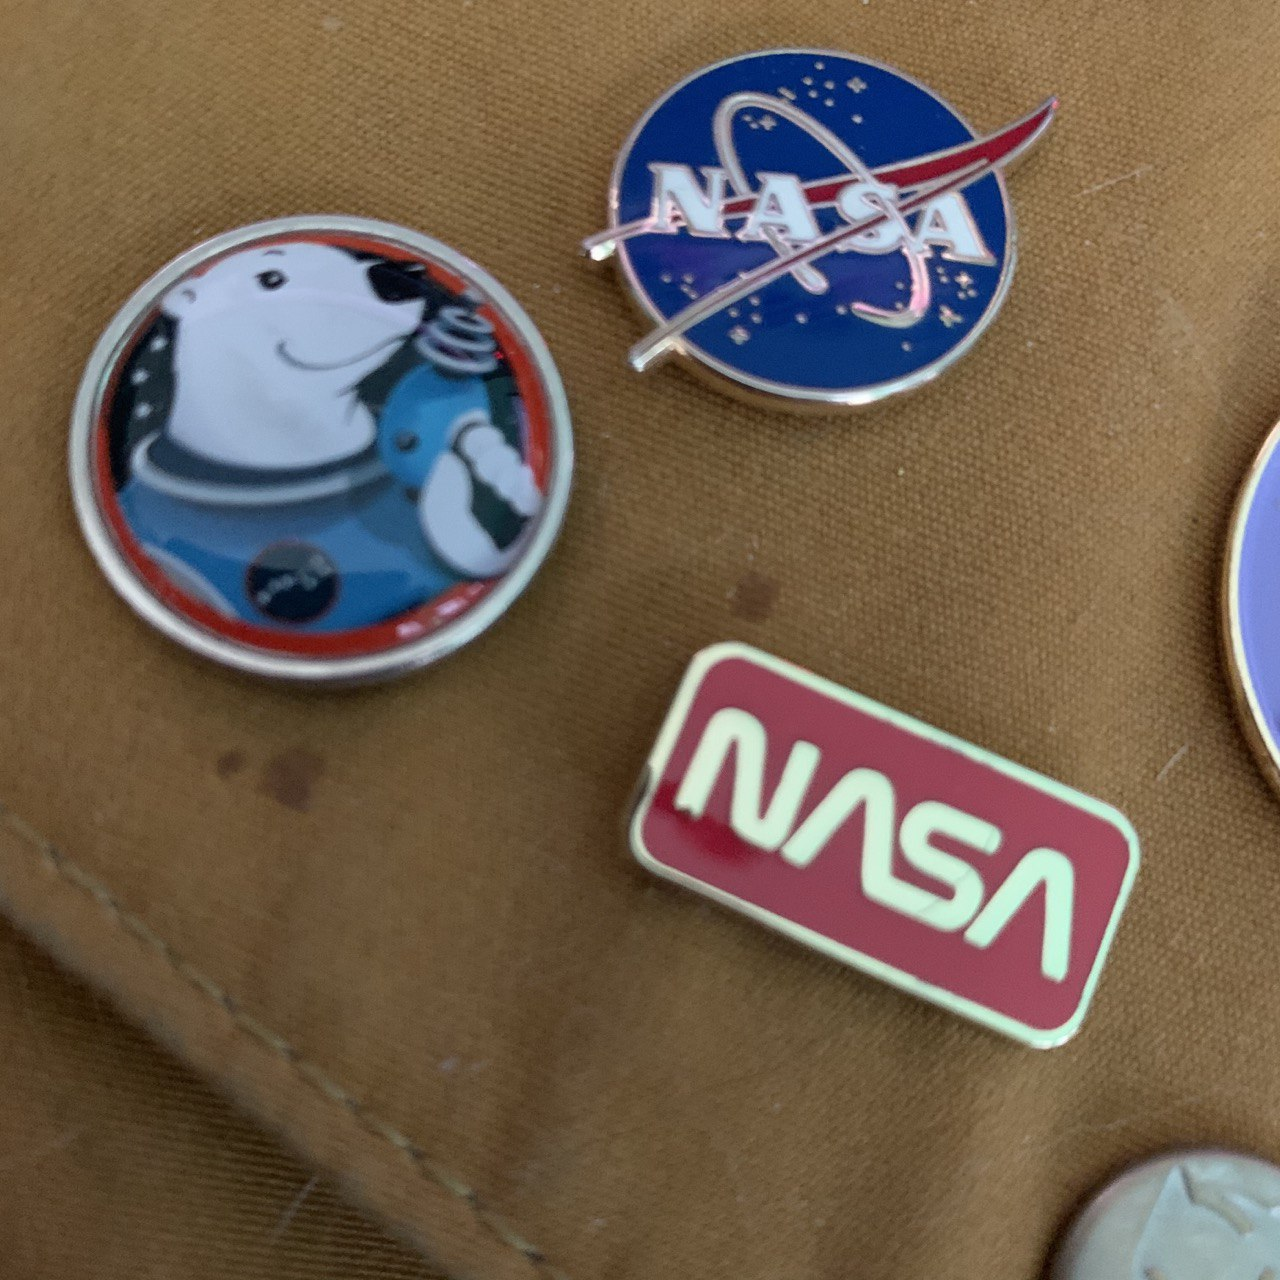 The original and 1976 NASA logos, as enamel pins, next to a pin with the mascot of the 75th World Science Fiction Convention, 'Major Ursa'